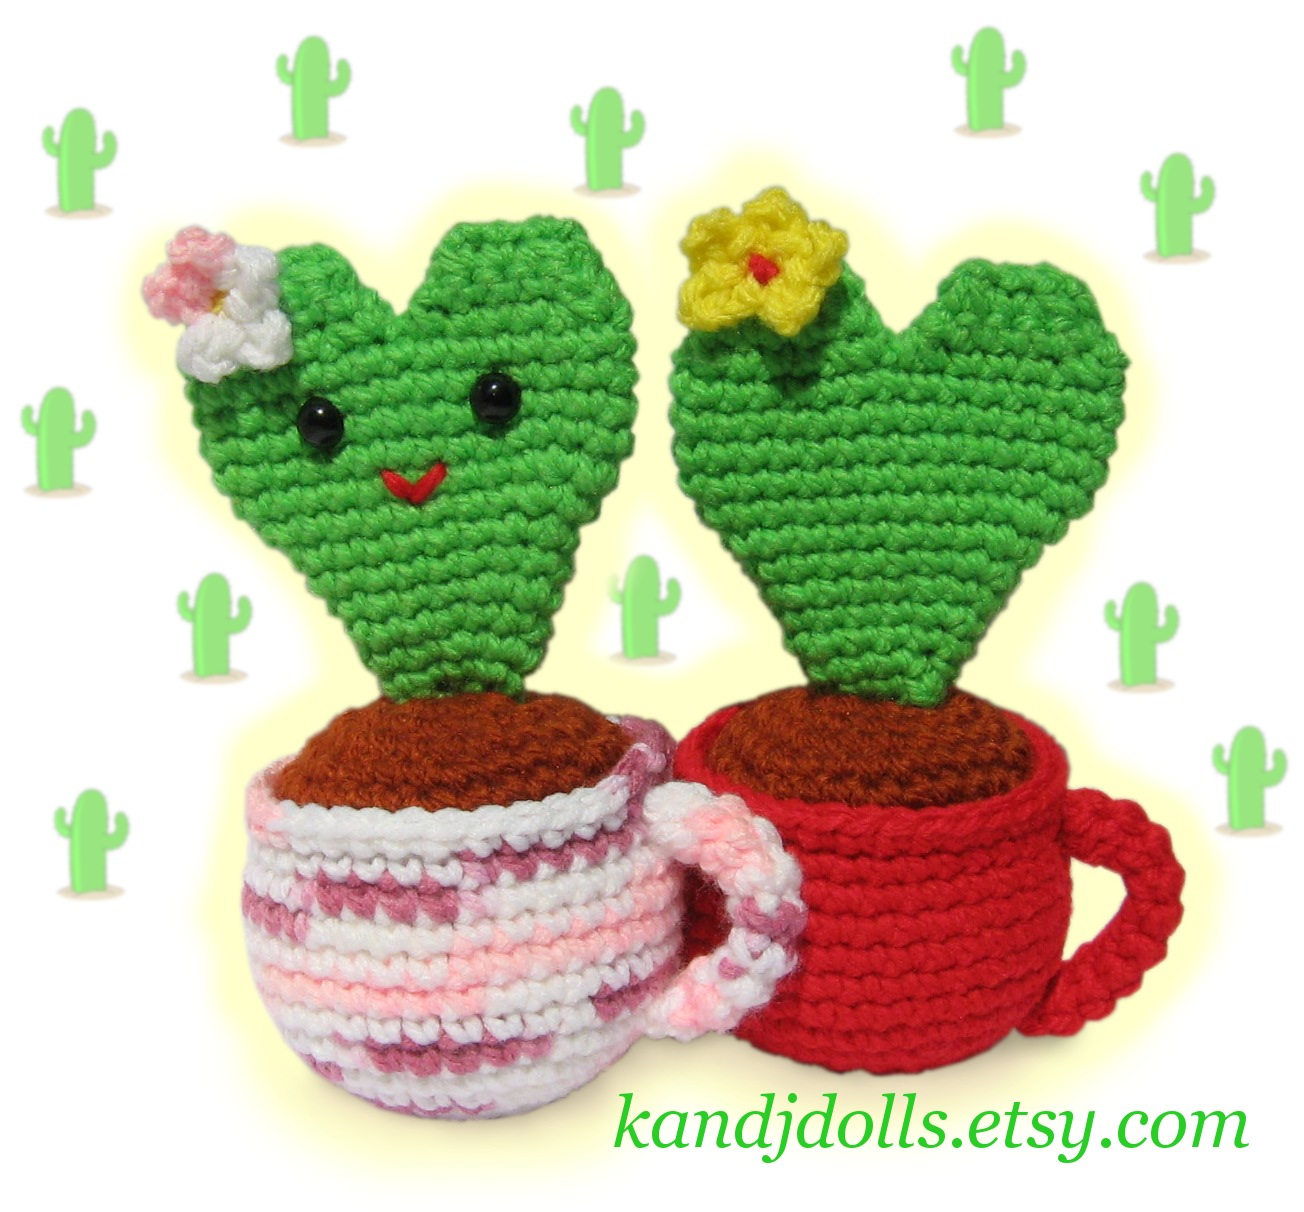 Free Crochet Pattern For Cactus : It s August ? Knit or Crochet a Cactus ? Why Not? free ...